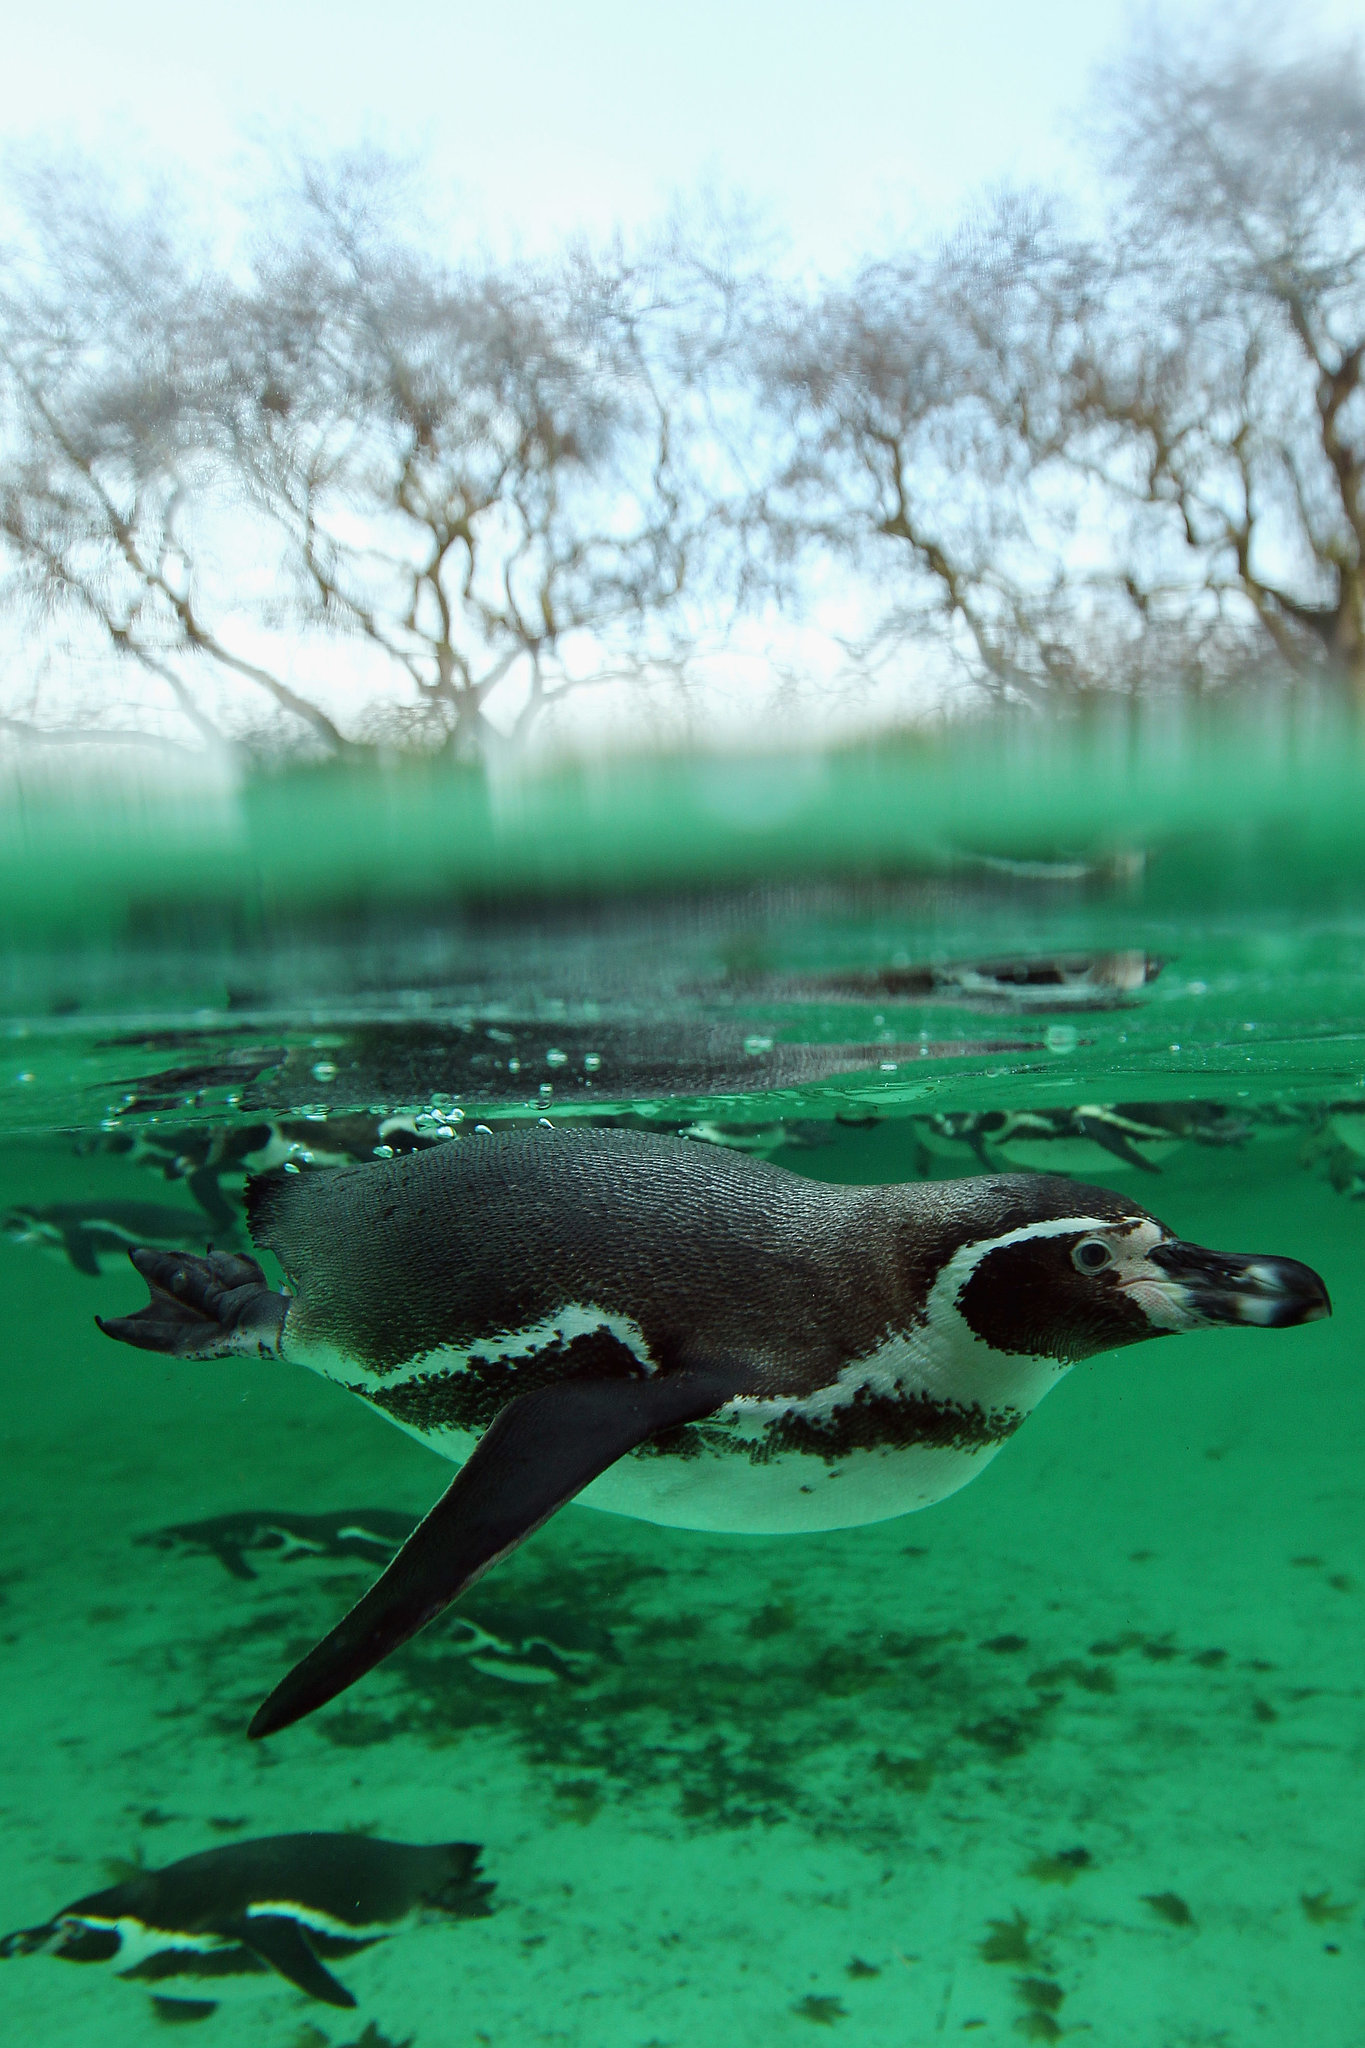 Native to Chile's Strait of Magellan, Magellanic penguins mate with the same partner year after year.